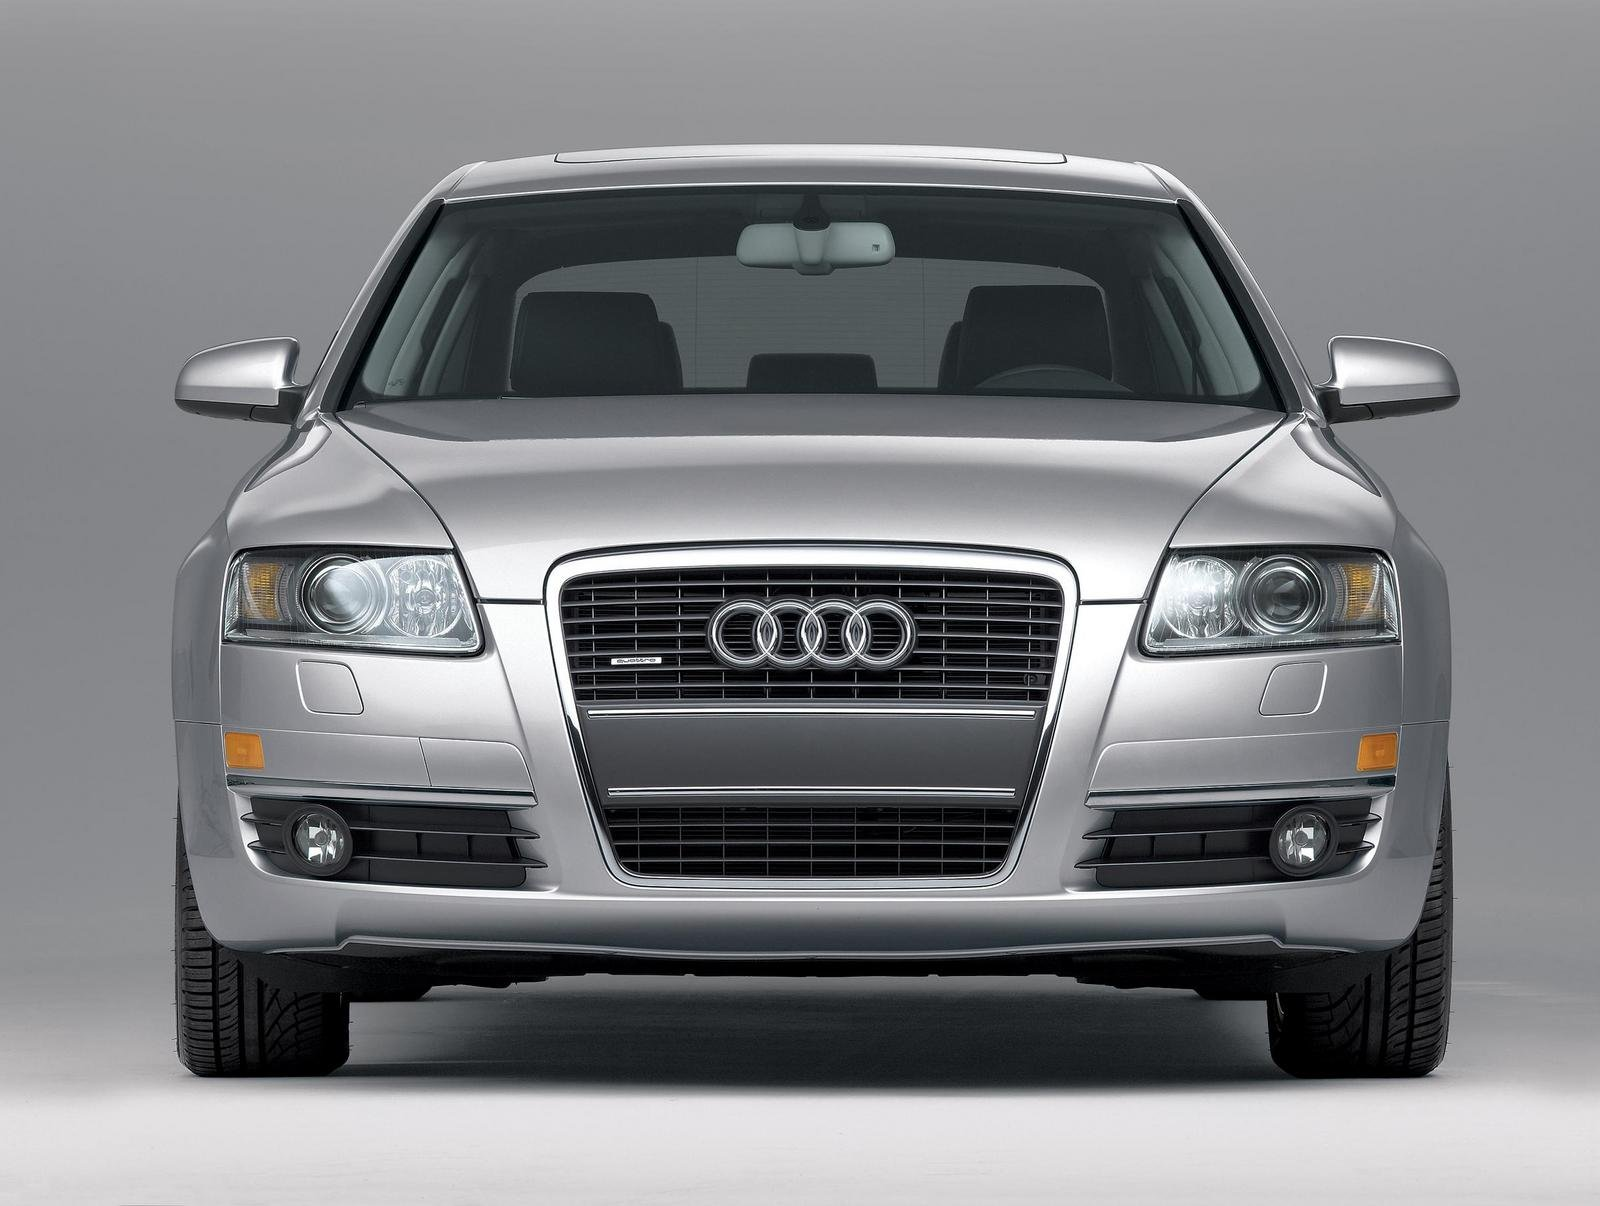 2007 audi a6 sedan picture 146515 car review top speed. Black Bedroom Furniture Sets. Home Design Ideas